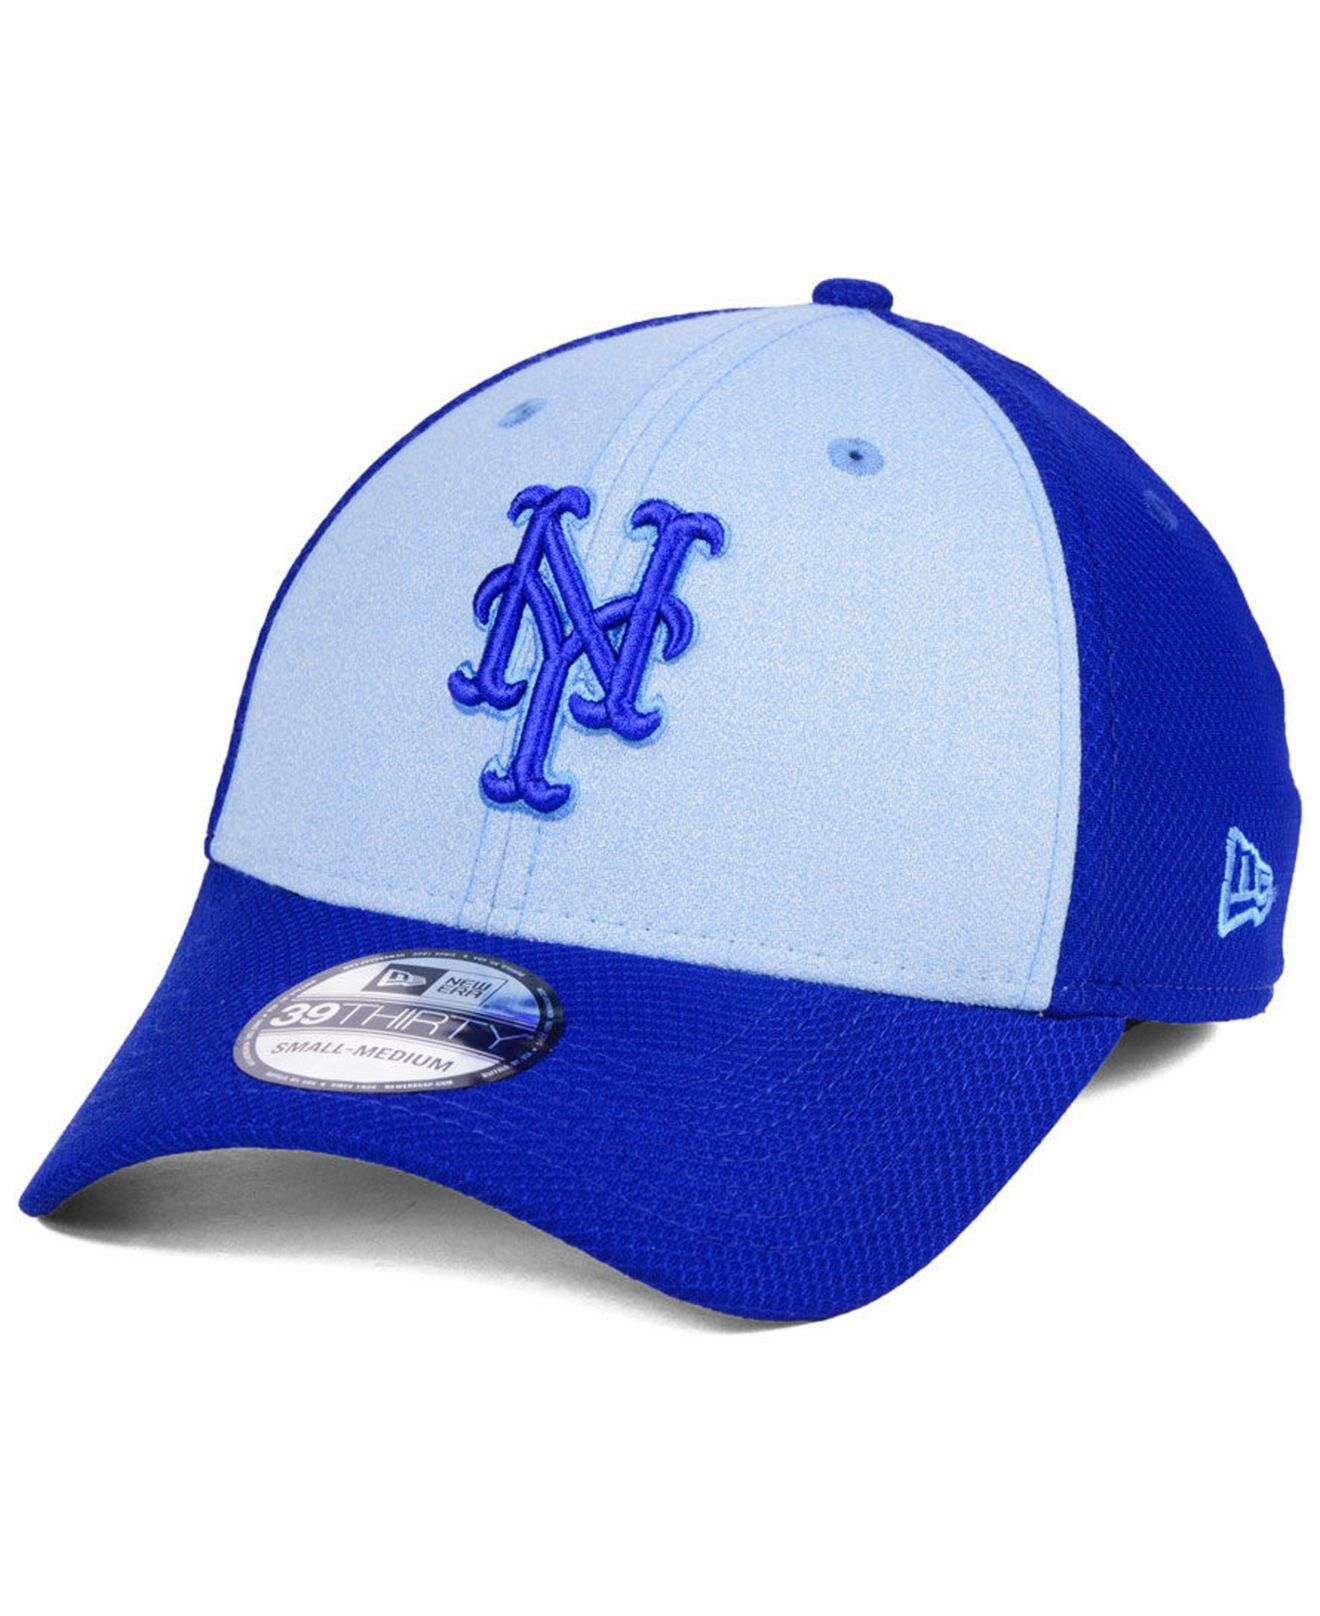 factory authentic 128af 01dc9 ... coupon code ktz. mens blue new york mets fathers day 39thirty cap 2018  fc42b 90e47